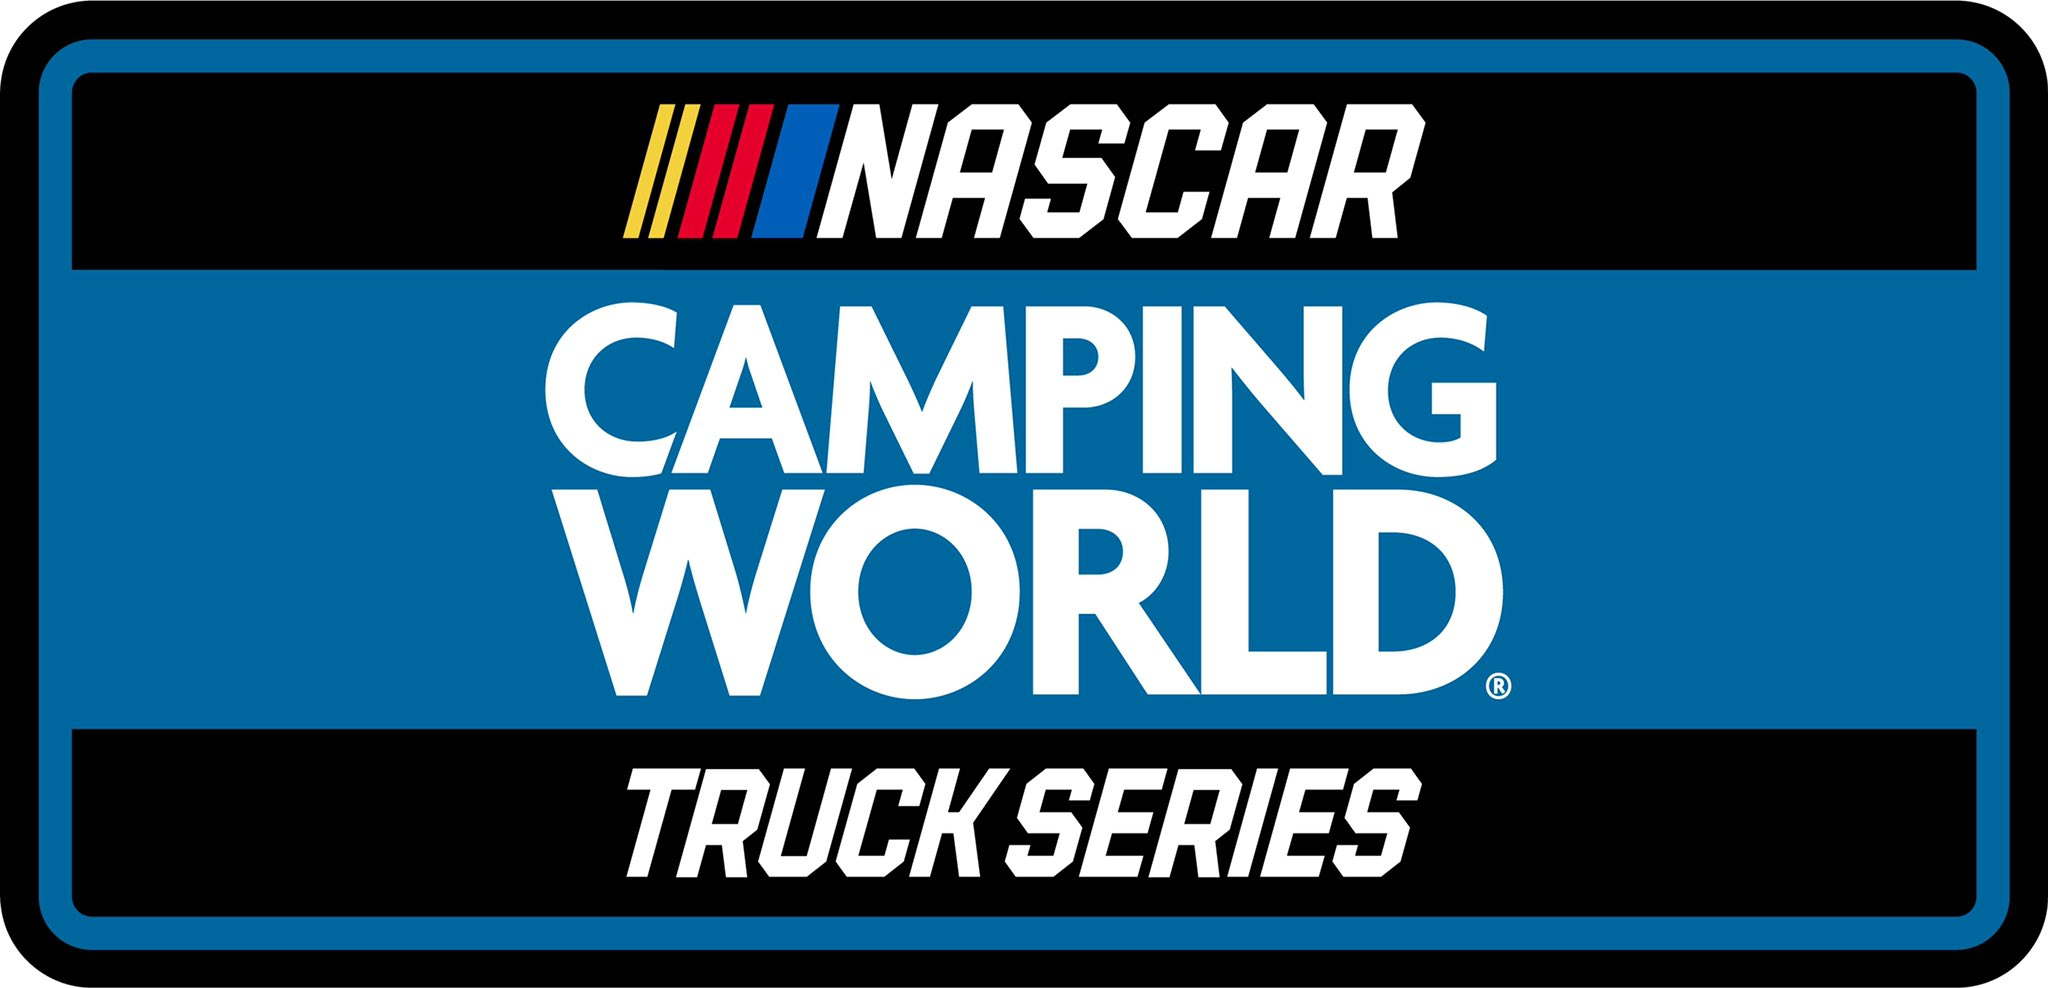 NASCAR Camping World Truck Series.jpg